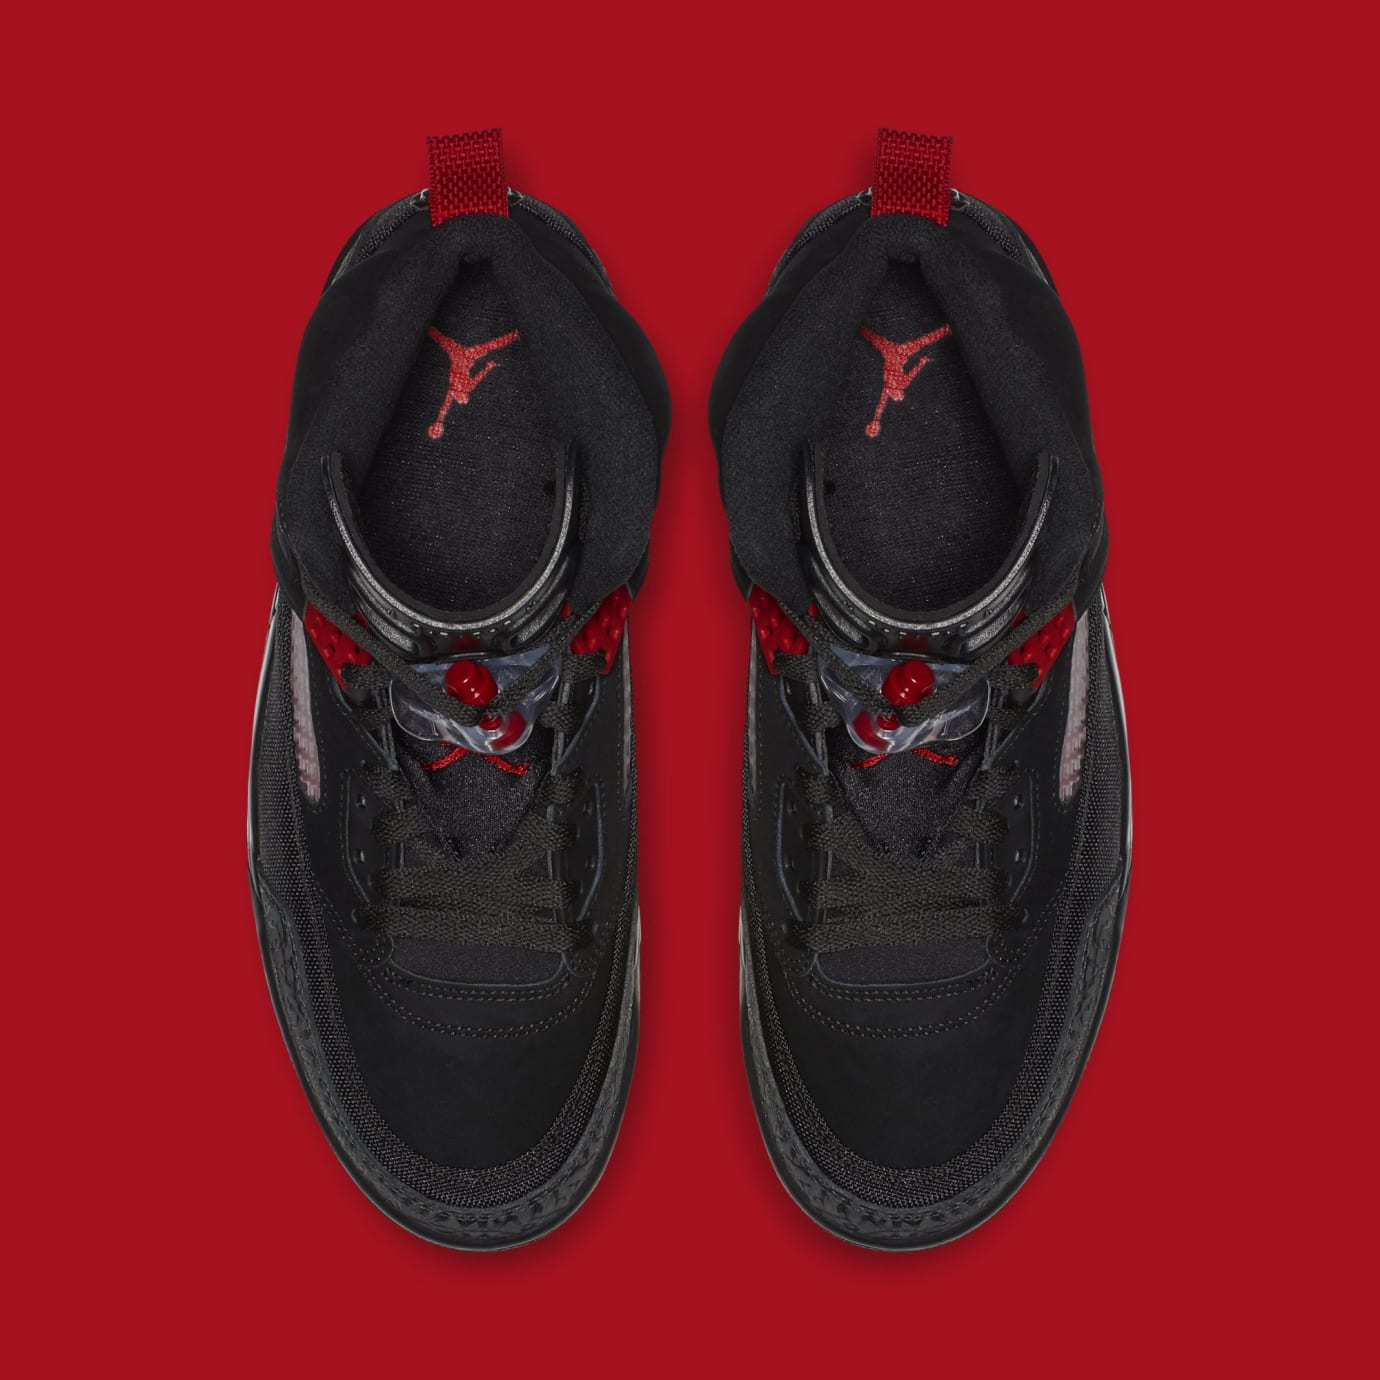 'blackanthracite Release Jordan Gym 315371 Spizike Red' 006 Date rCBoeWdx